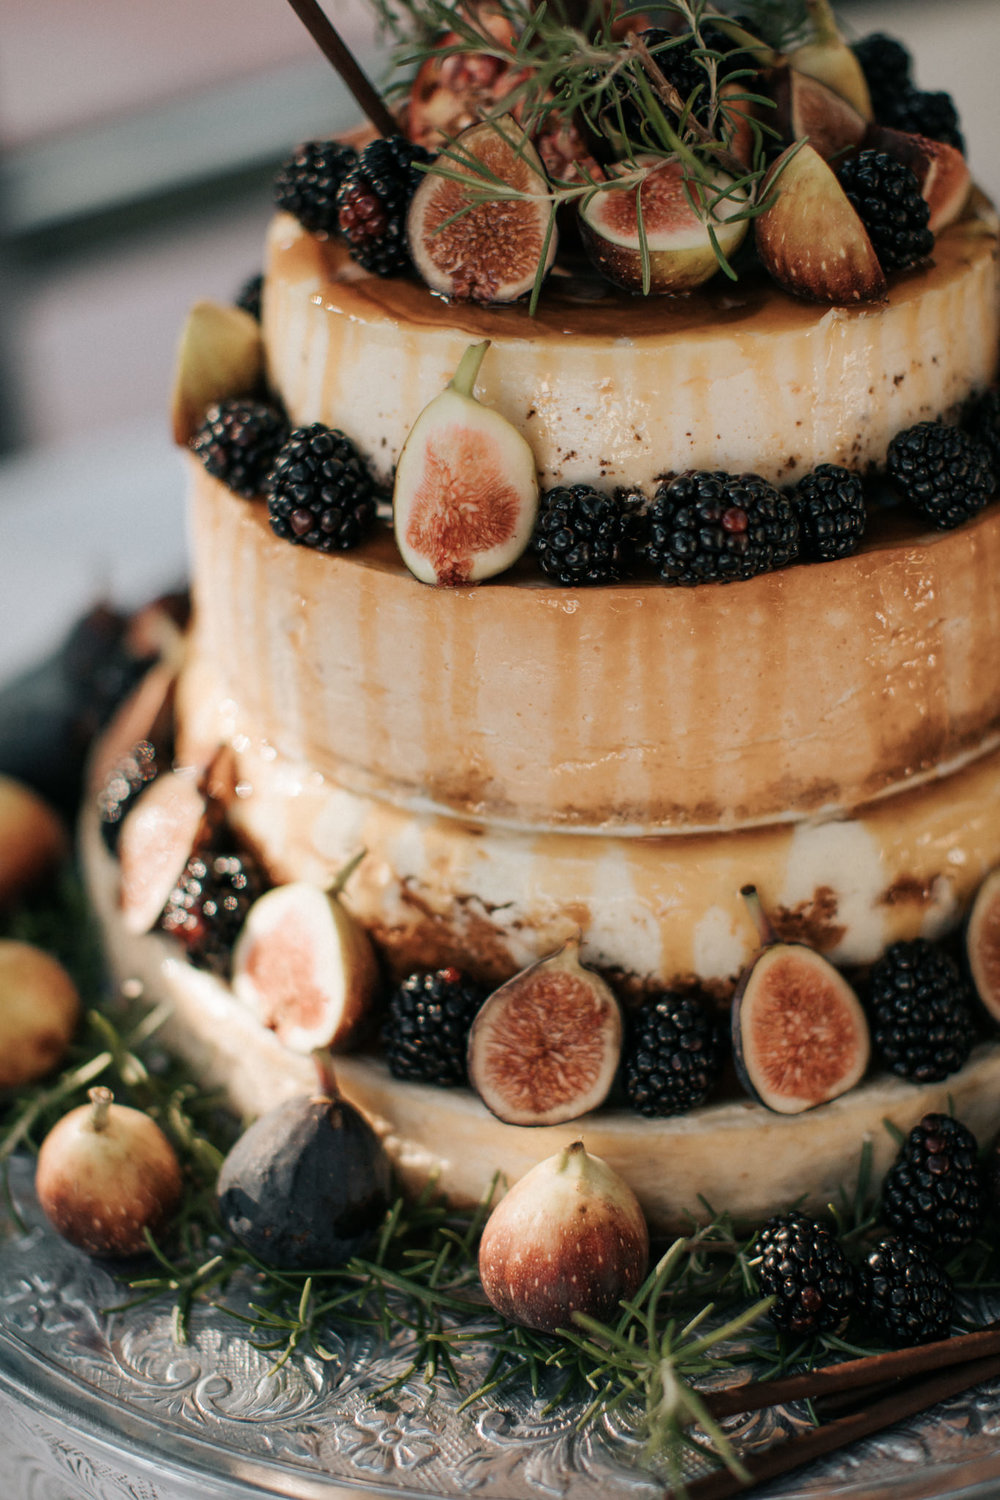 cassie-cook-photography-chattanooga-wedding-photographer-waterhouse-pavillon-adventurous-wedding-unique-fig-wedding-cake